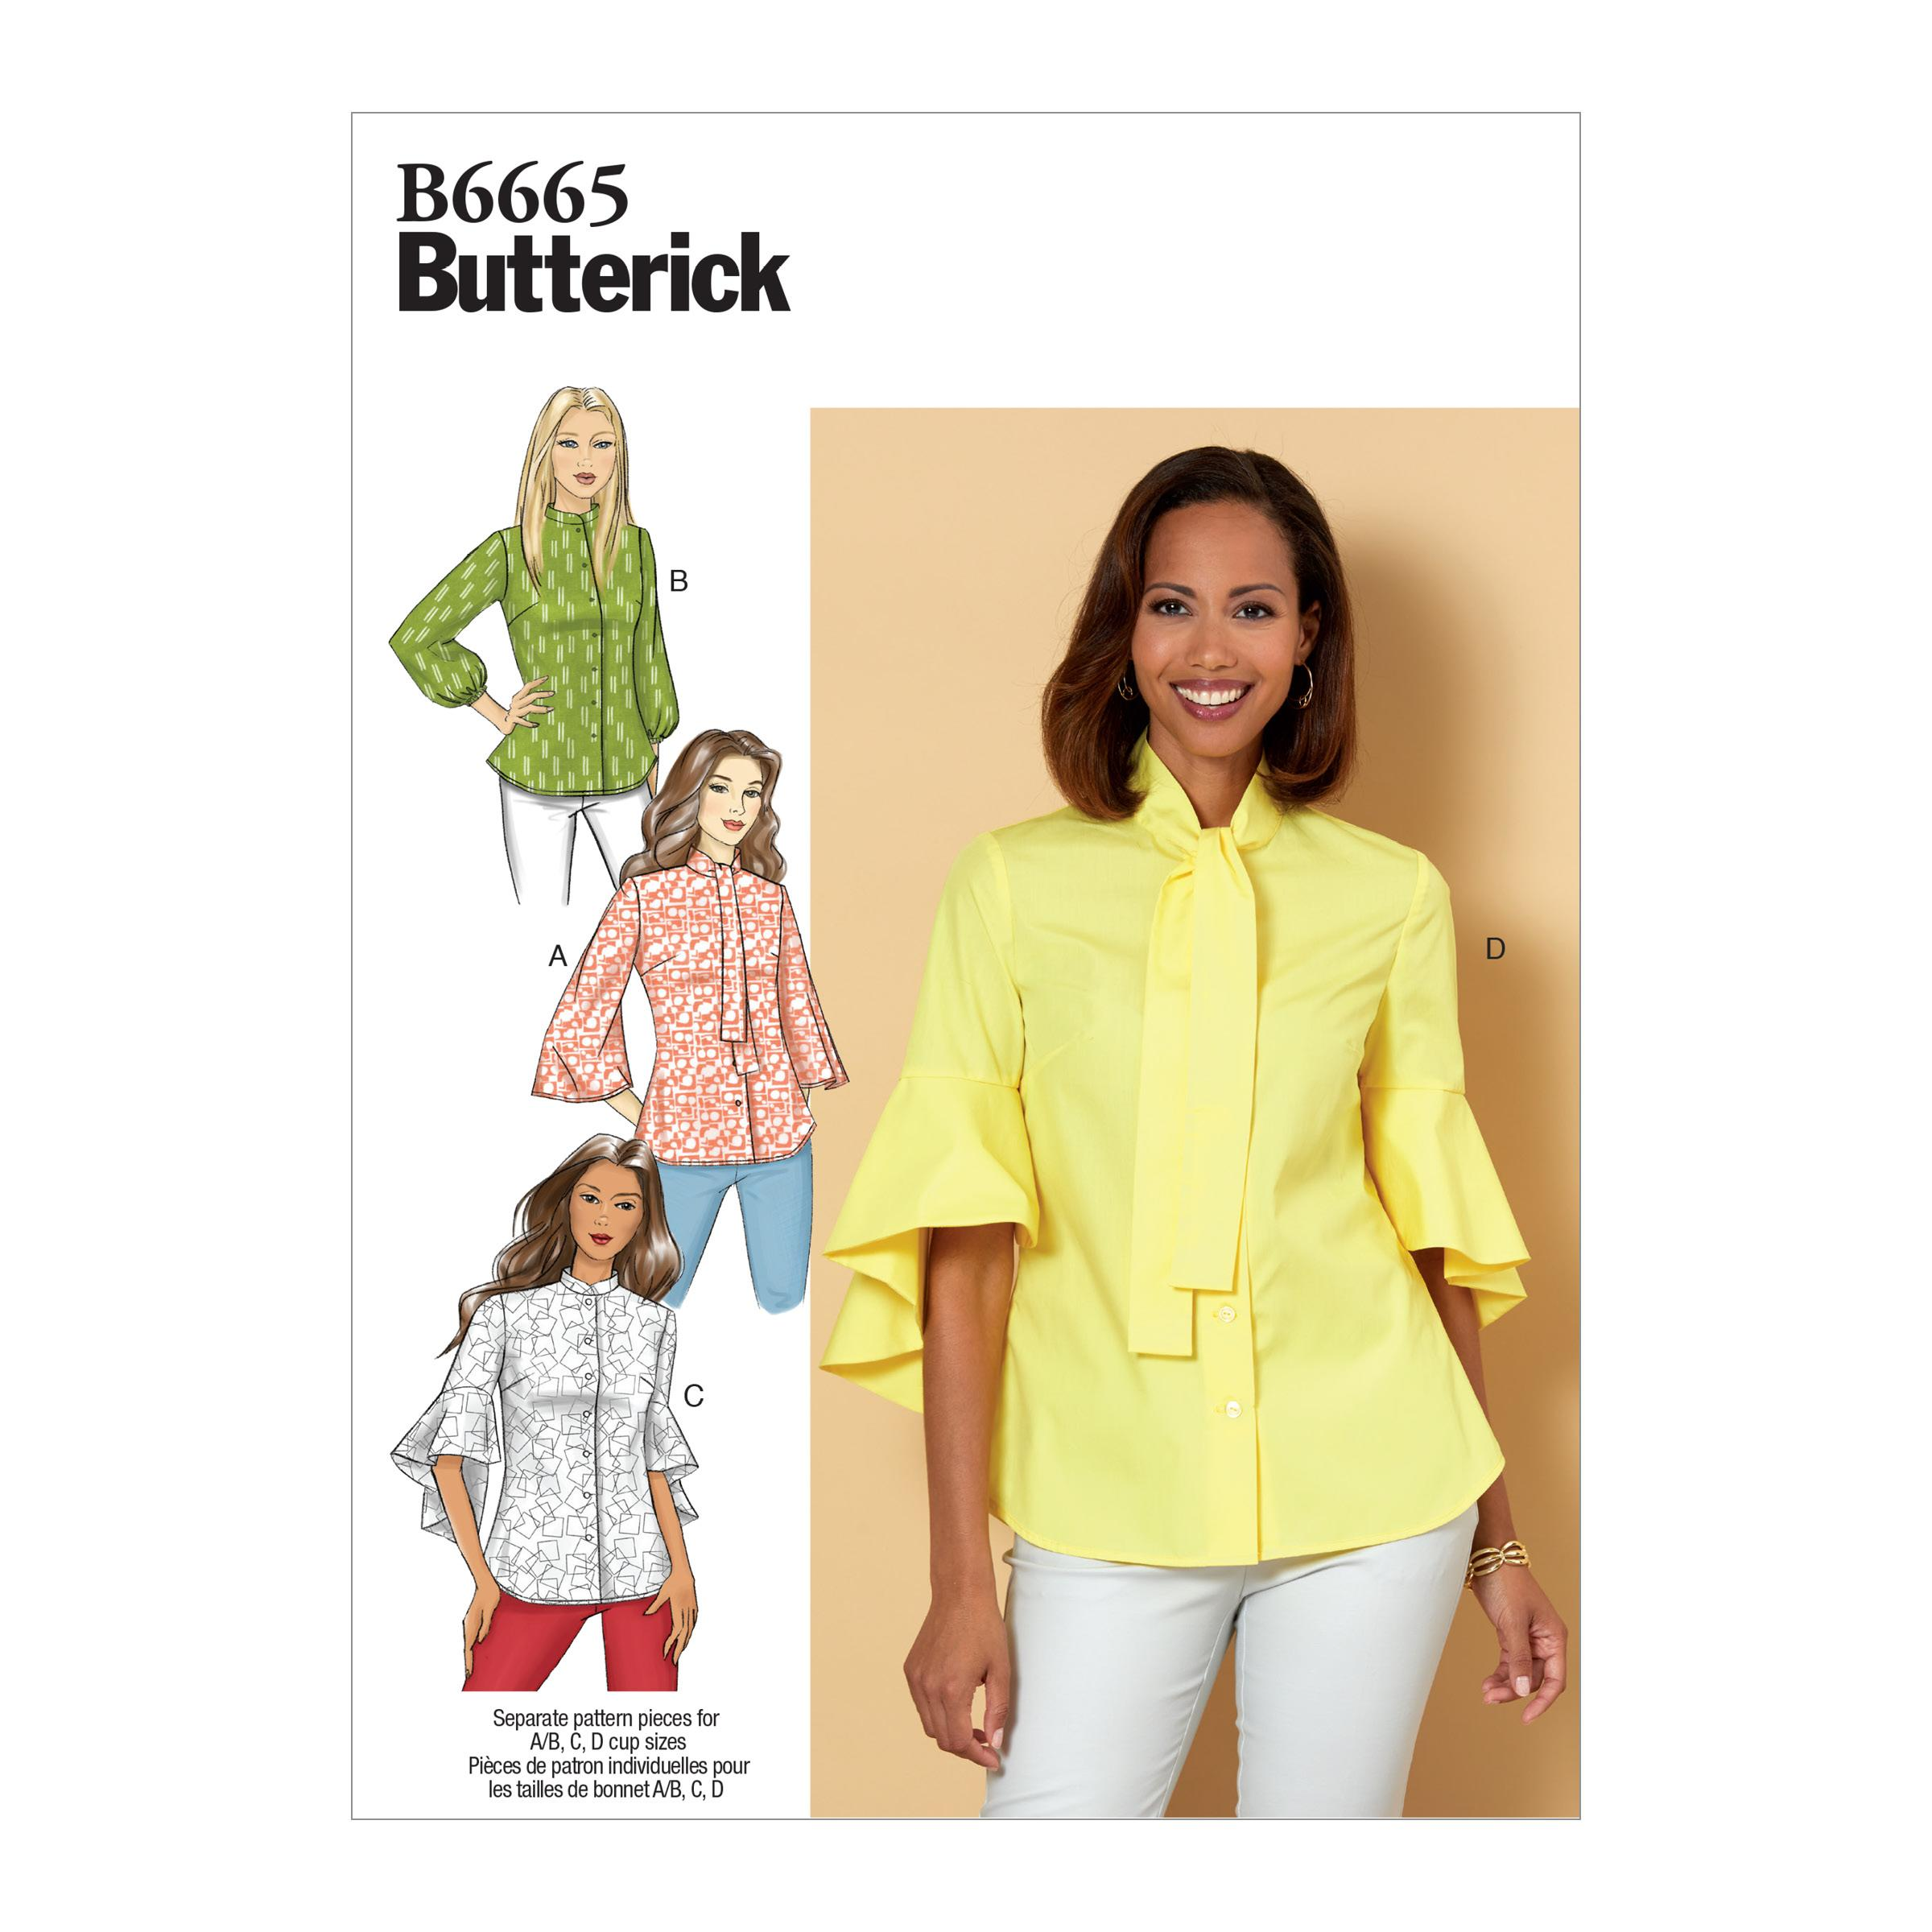 Butterick B6665 Misses' Top